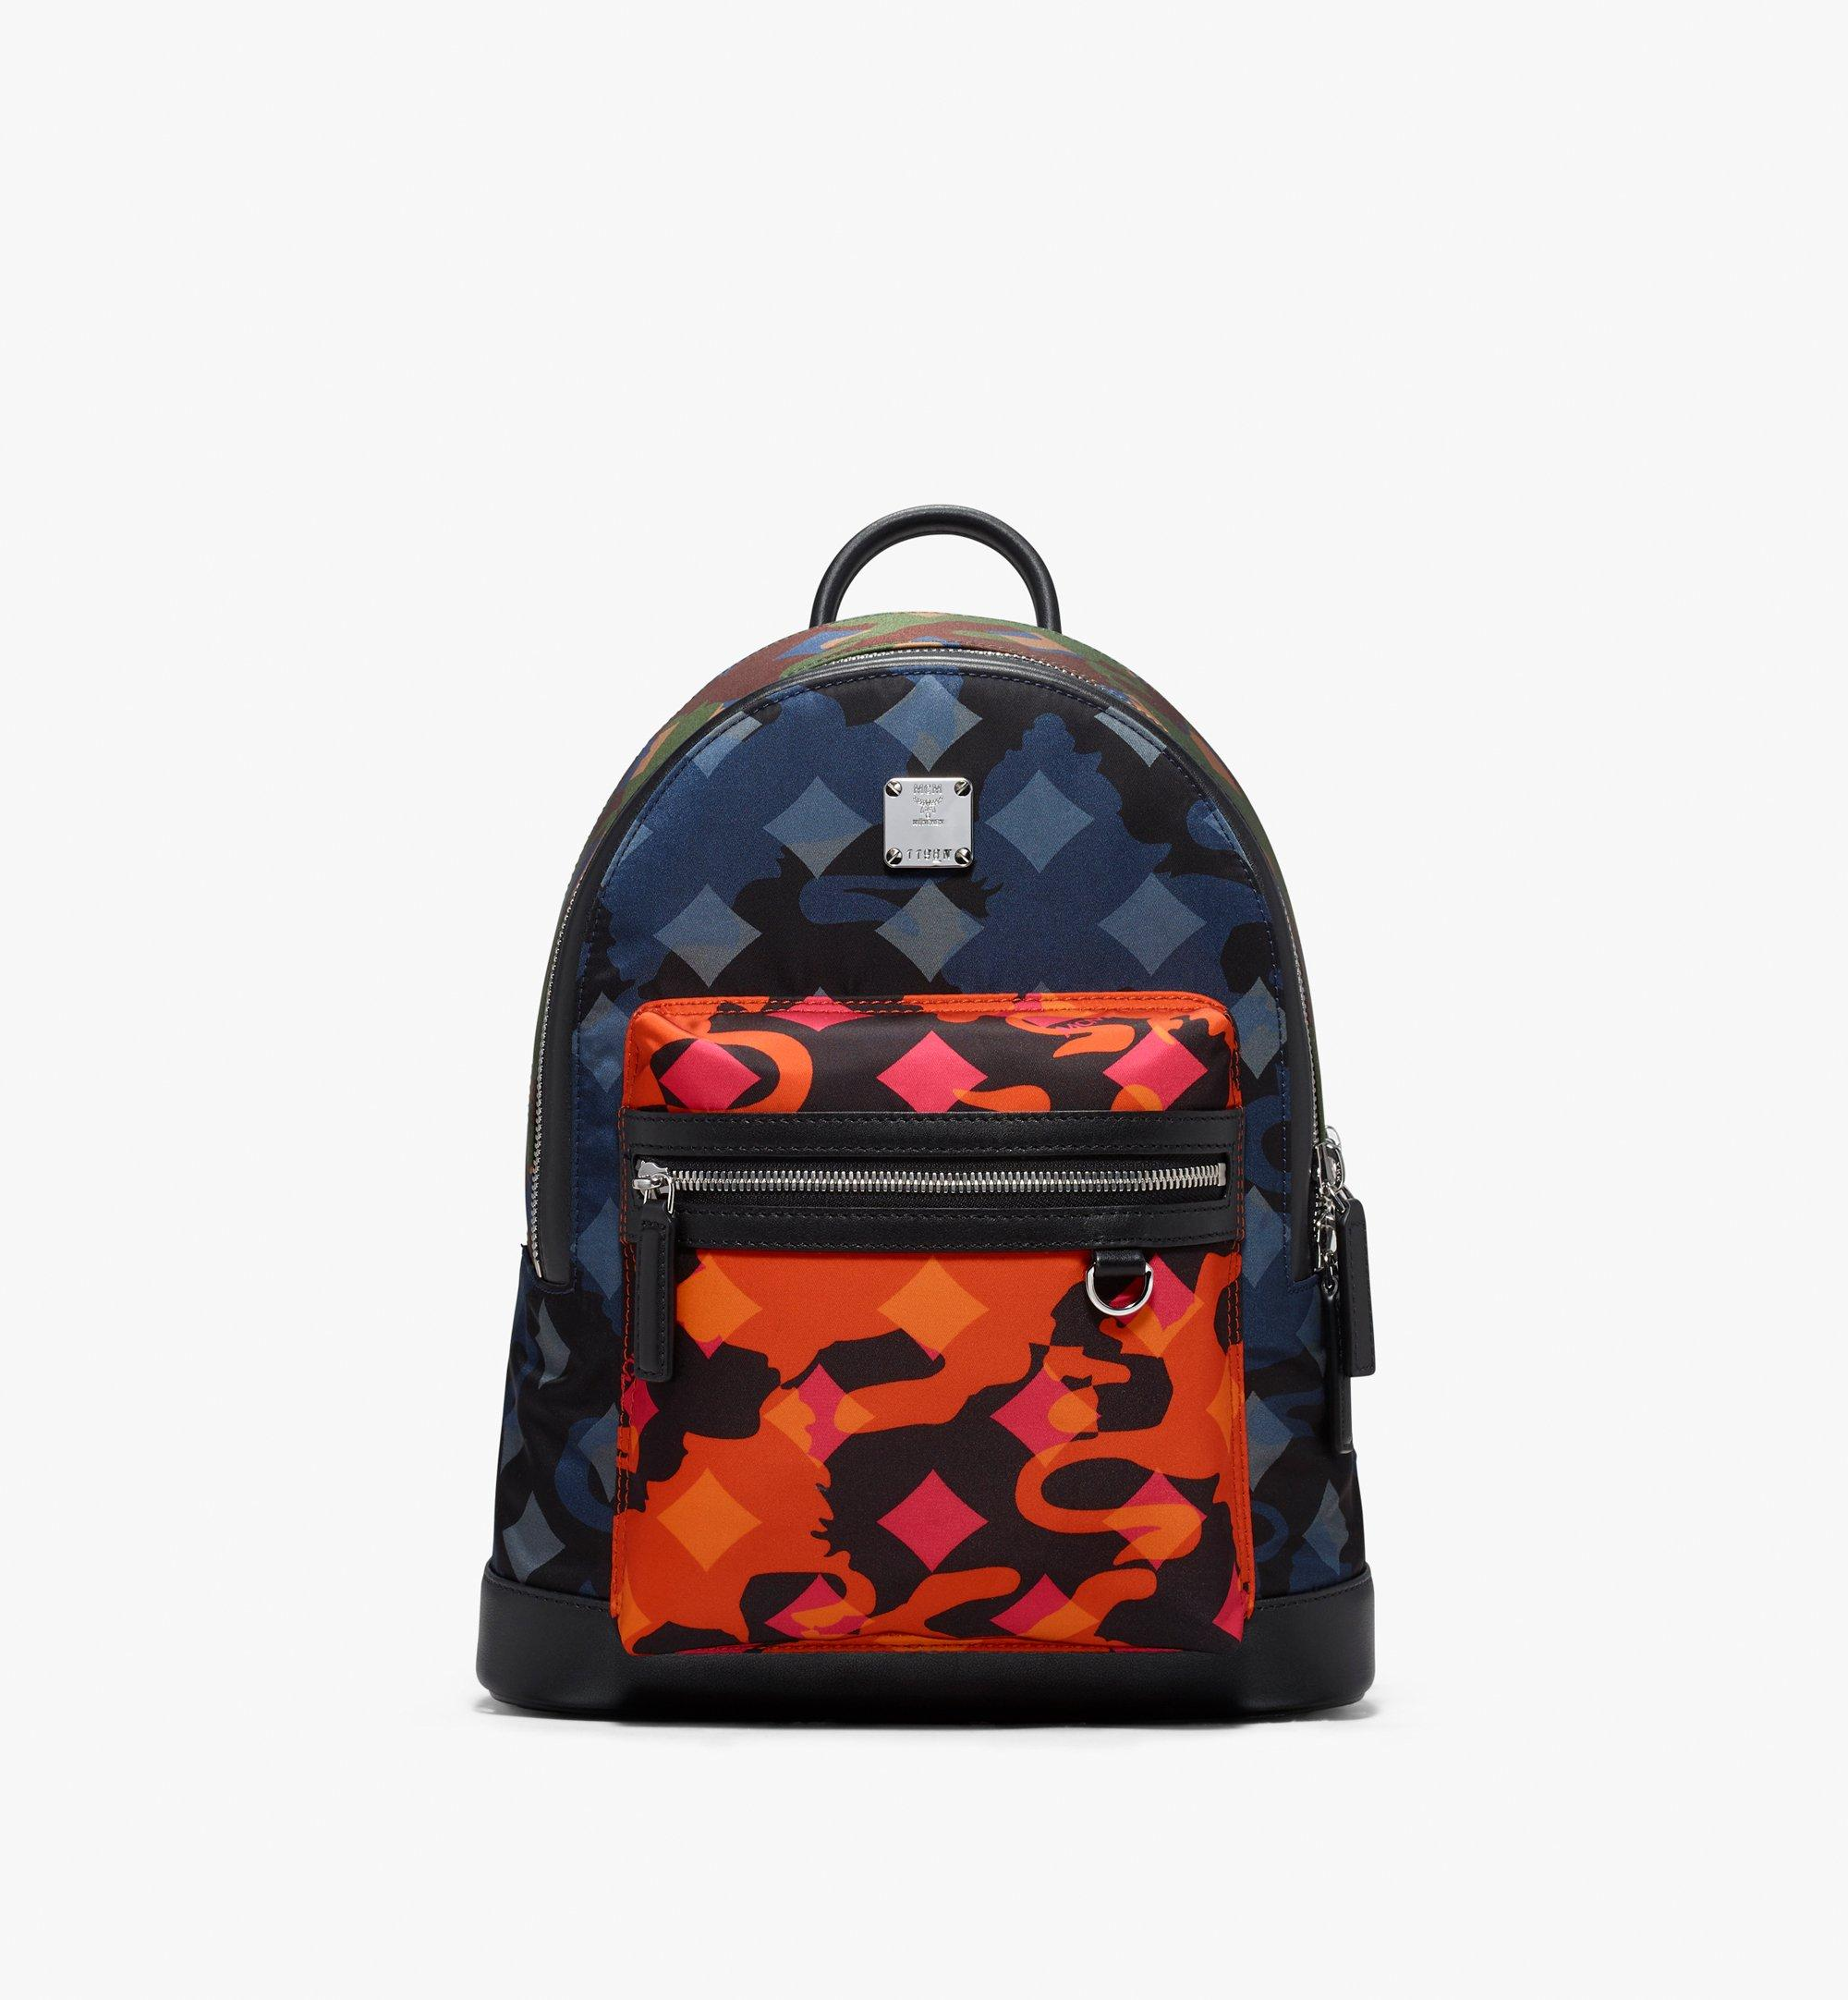 32 cm 12.5 in Dieter Rucksack in Munich Lion Camo Multi